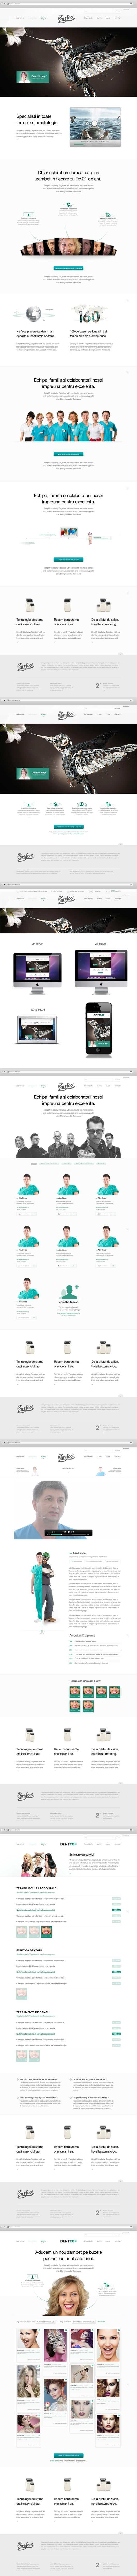 Dentcof Website Redesign by rusadrianewald